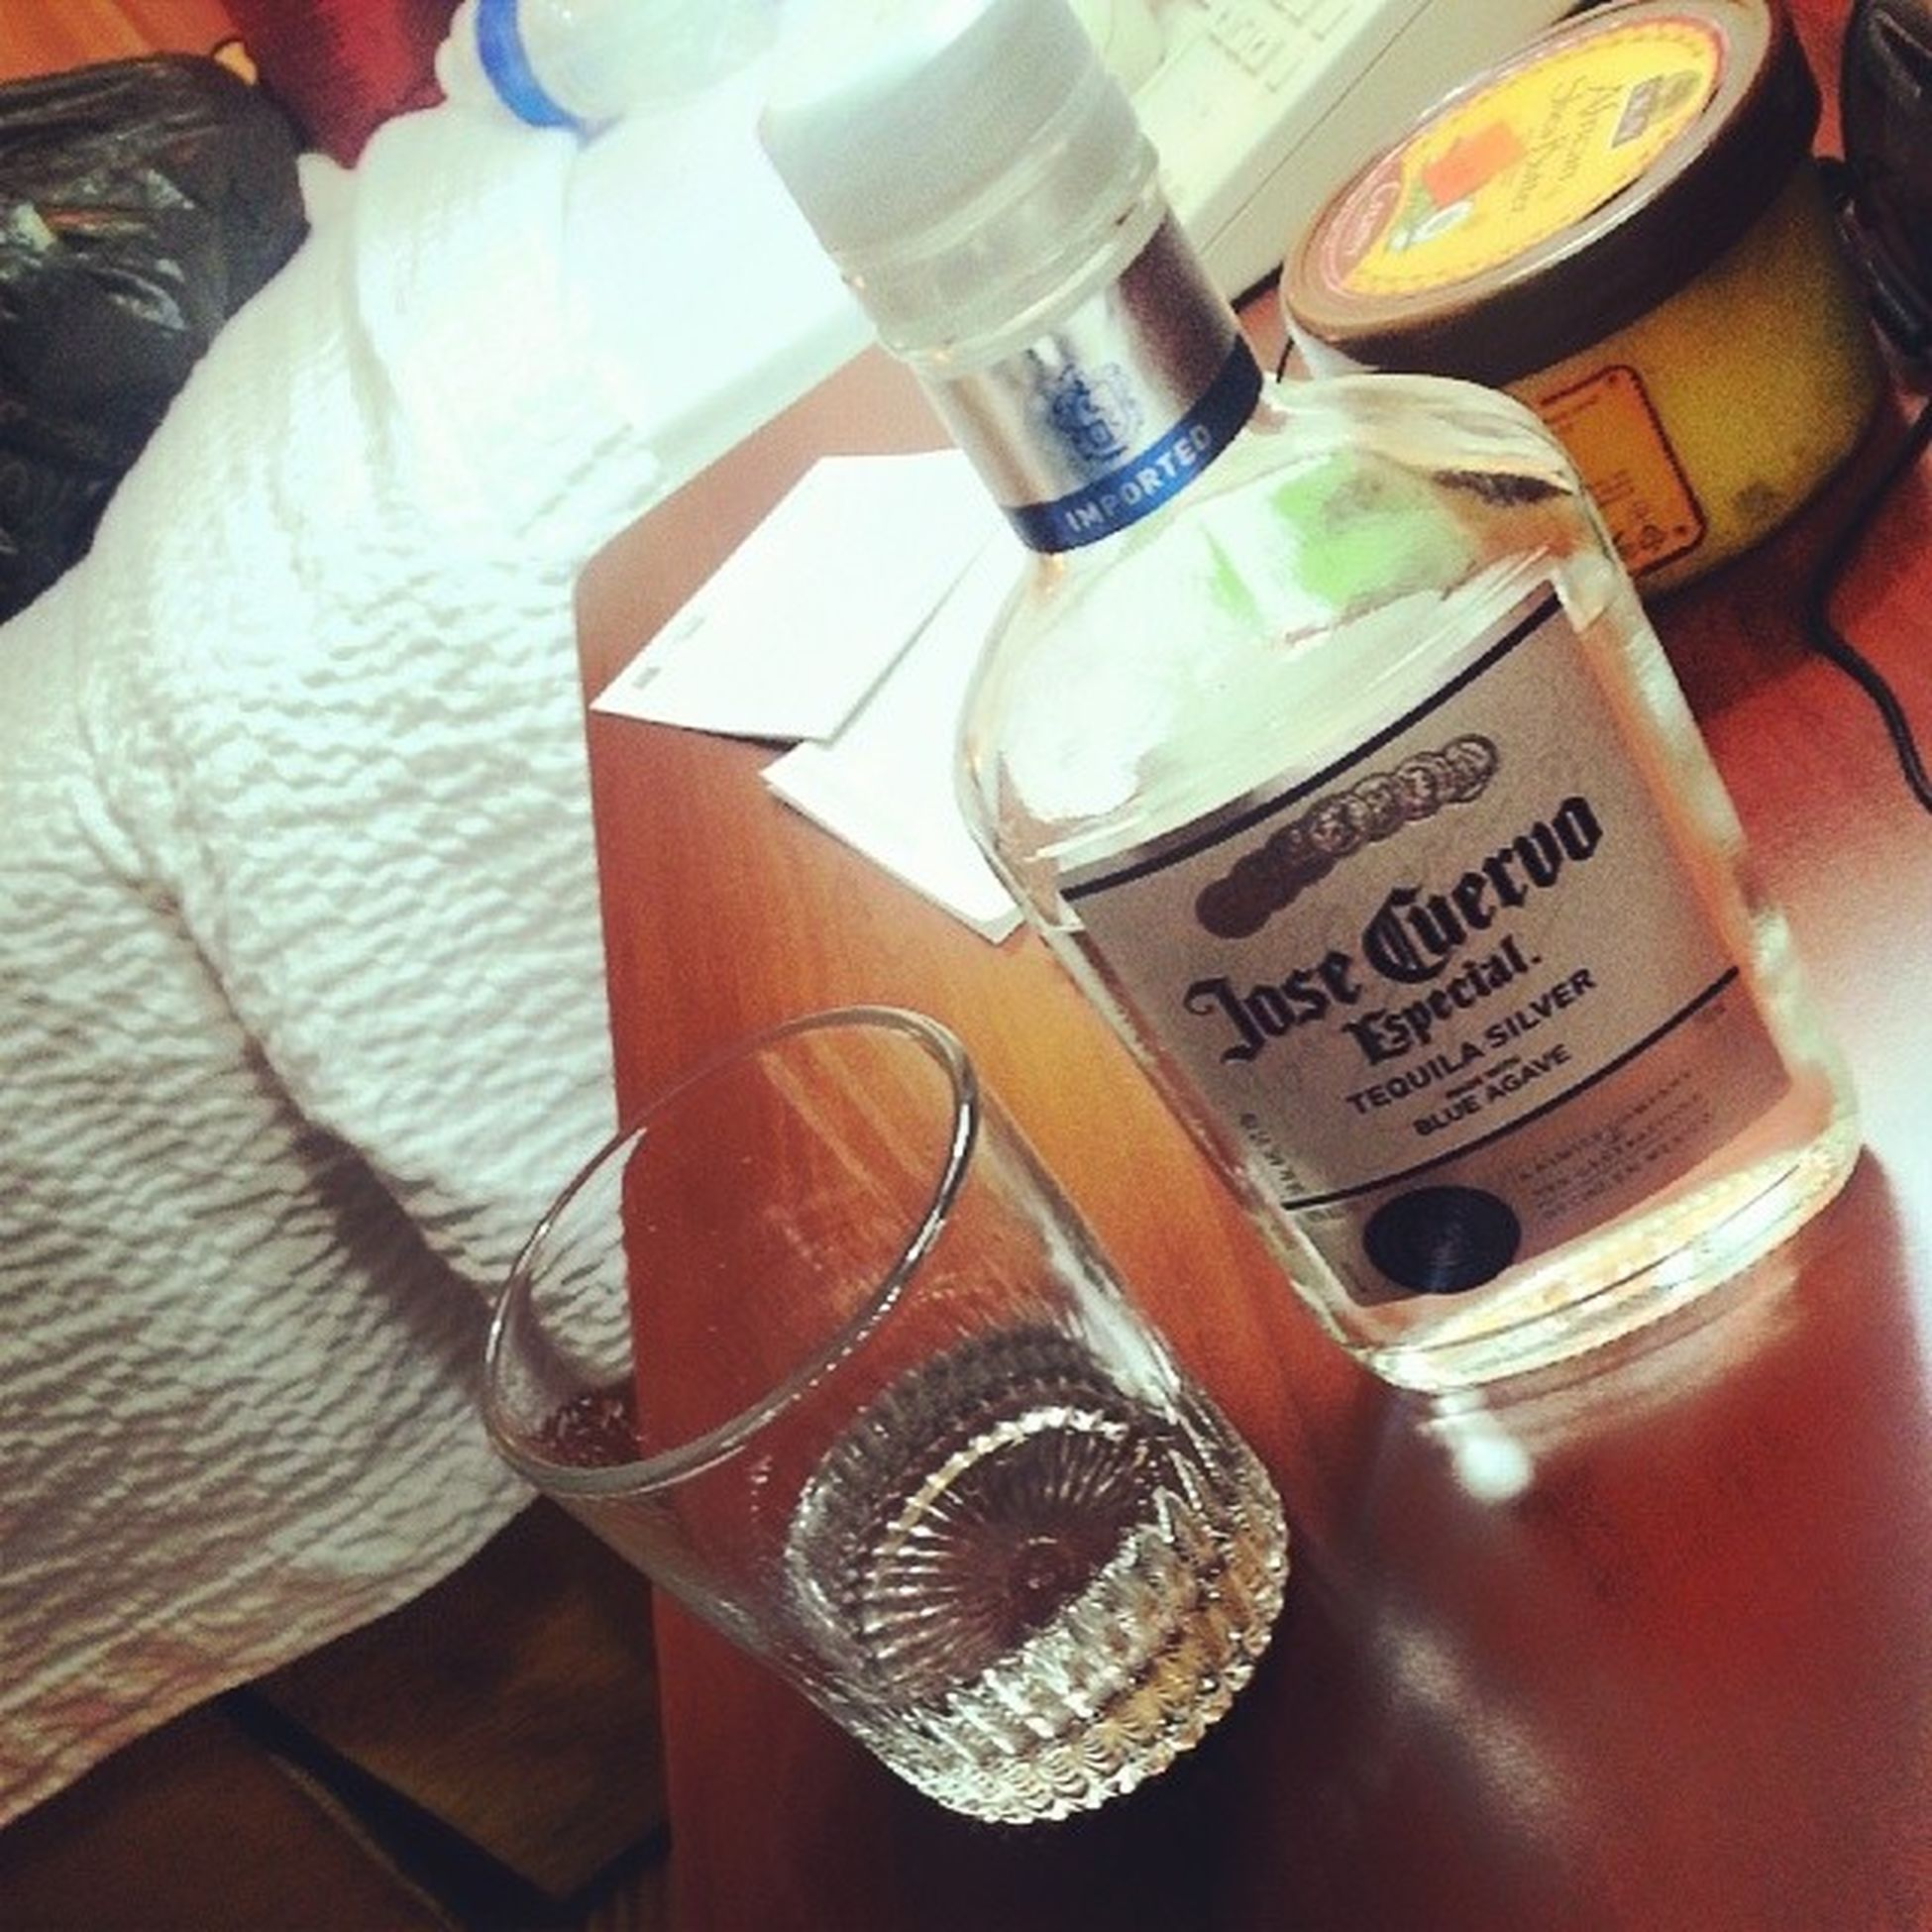 KIATEQUILA Cuervo Silver  We bout to go bowling!